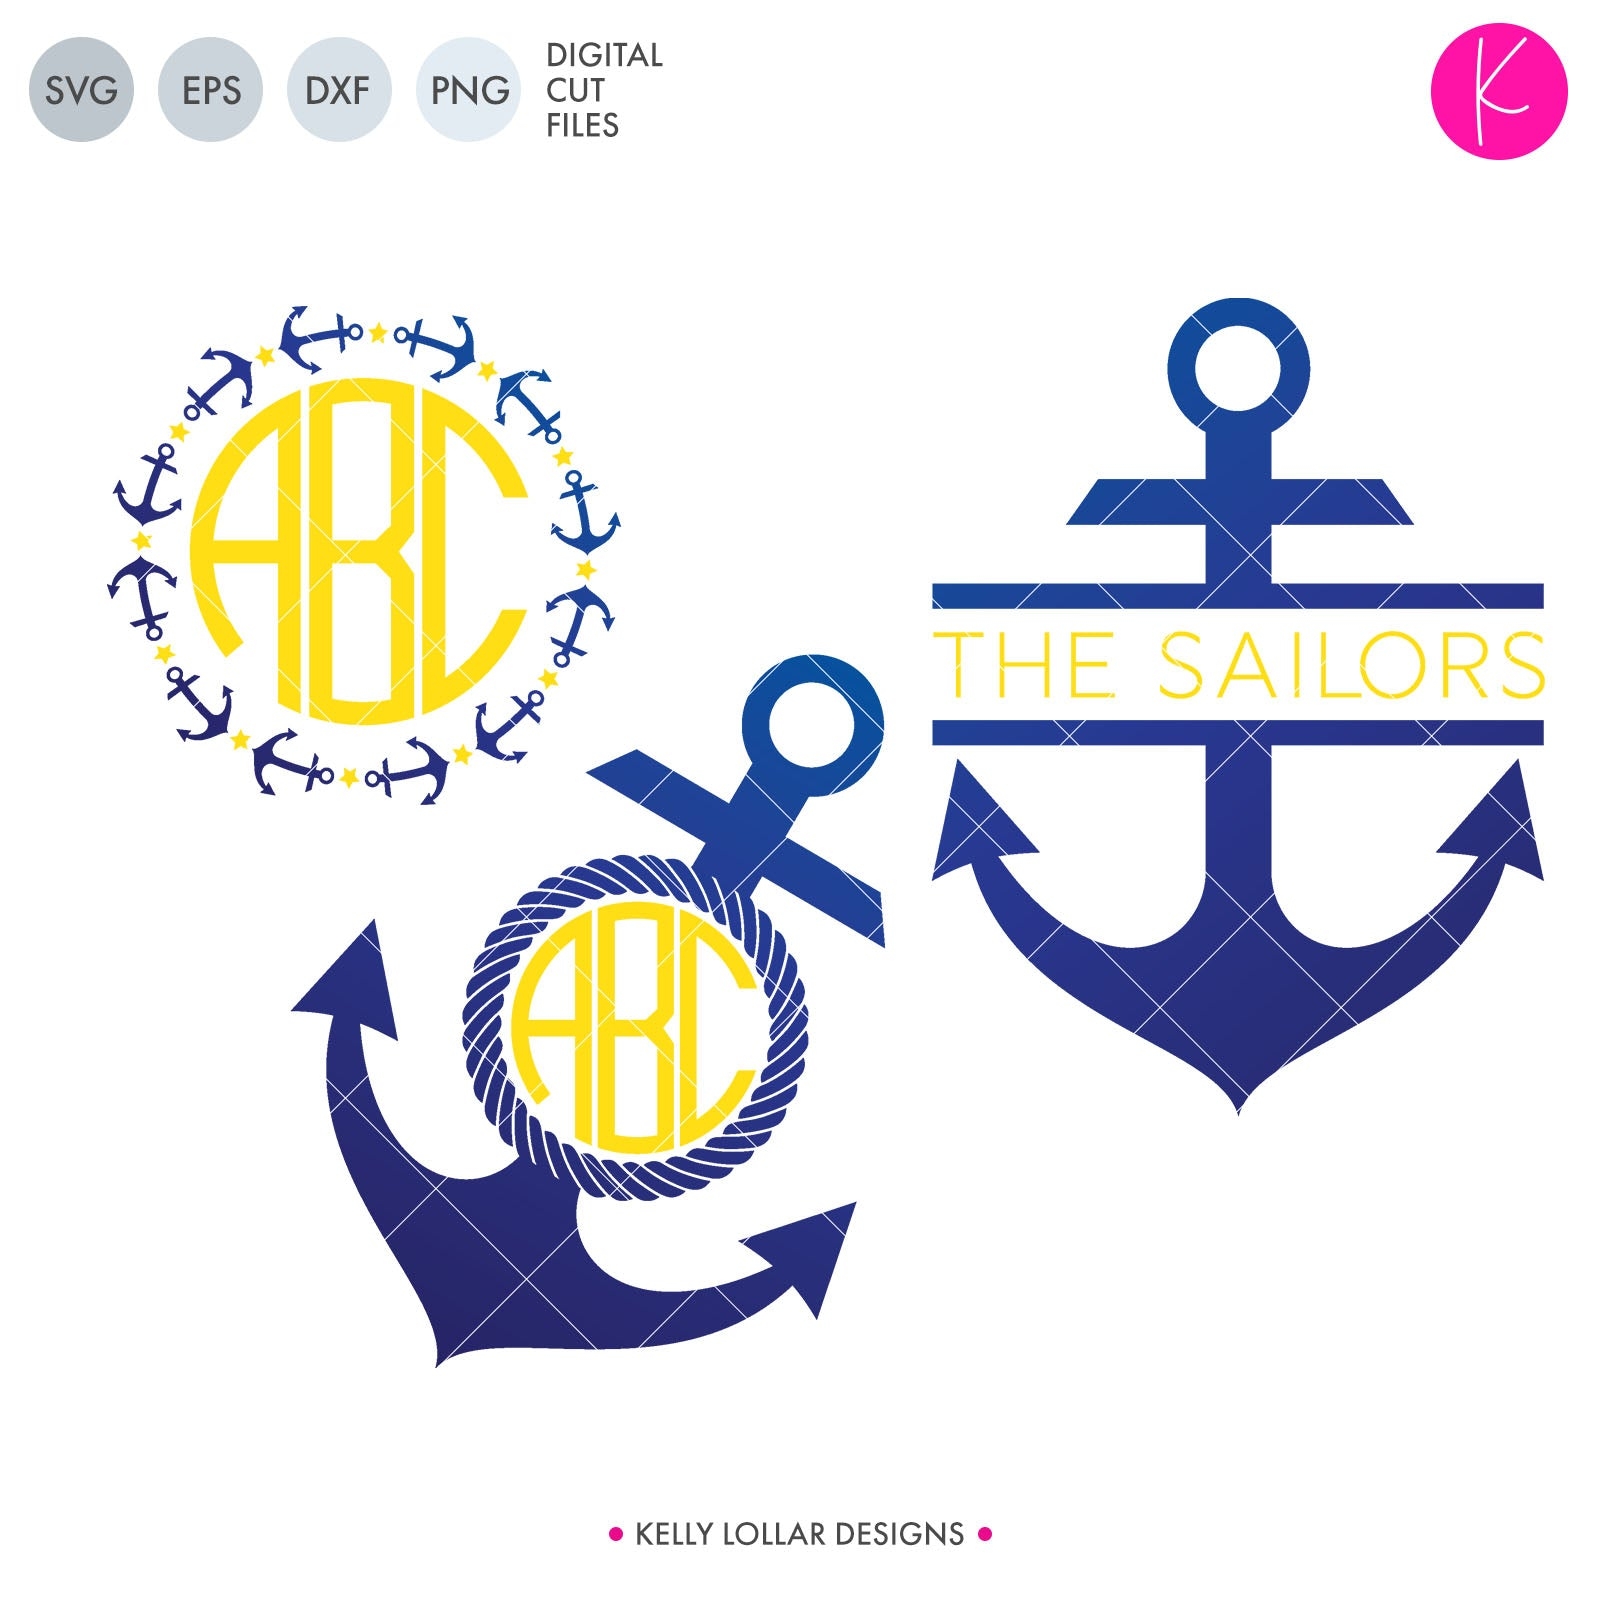 Anchor Monogram Pack 2 | SVG DXF EPS PNG Cut Files Set of 3 Nautical Themed Monograms - Star and Anchor Circle, Anchor with Rope Circle, Split Anchor | SVG DXF PNG Cut FilesLove a great anchor frame svg but need